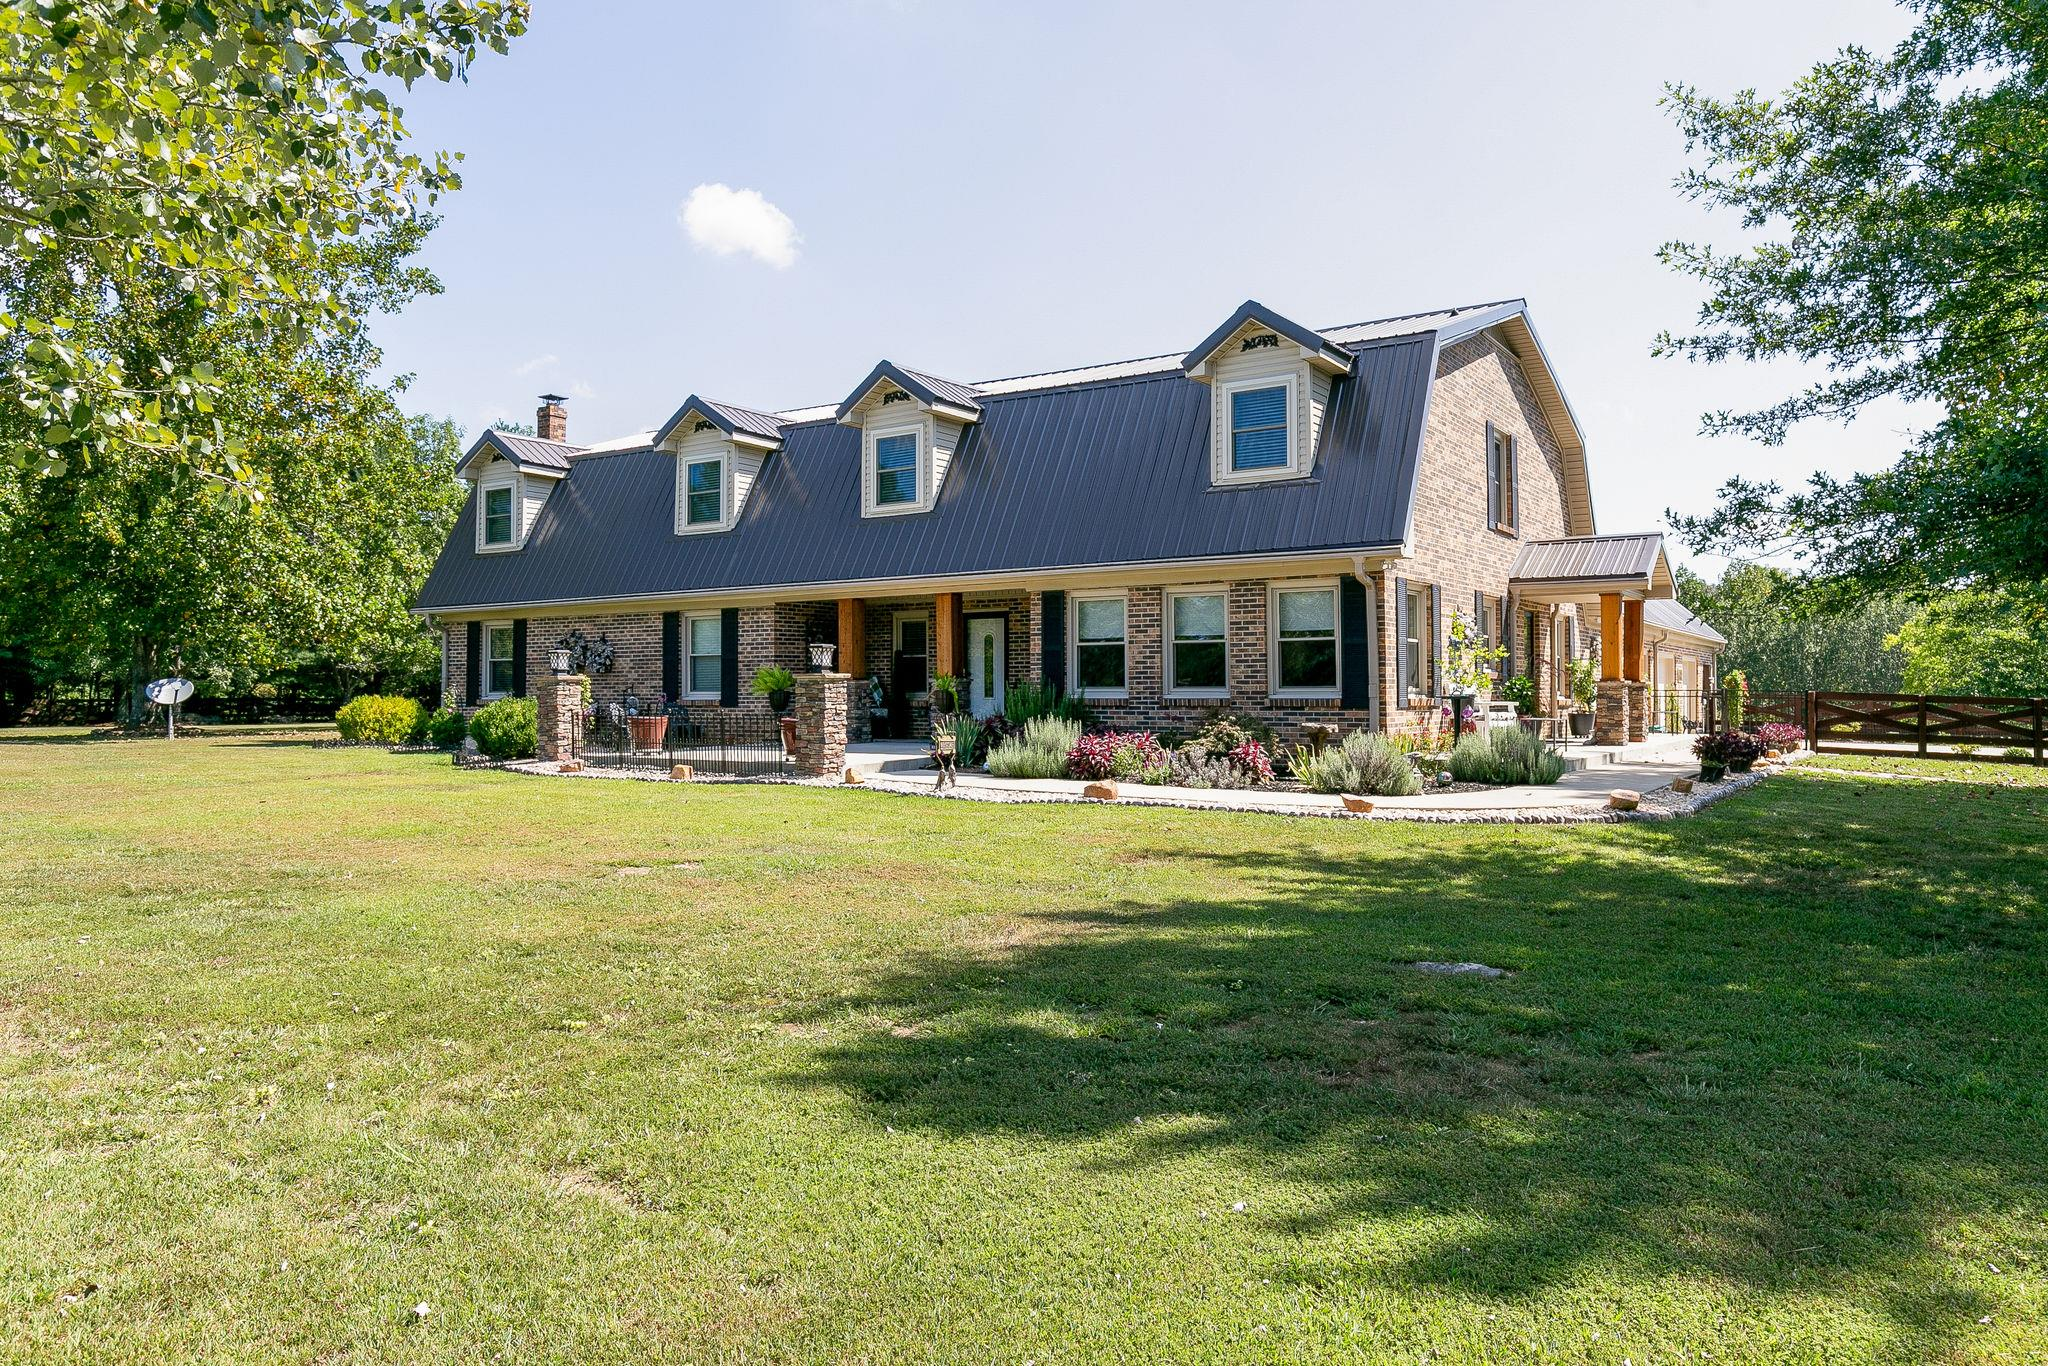 2038 N Lasea Rd, Spring Hill, Tennessee